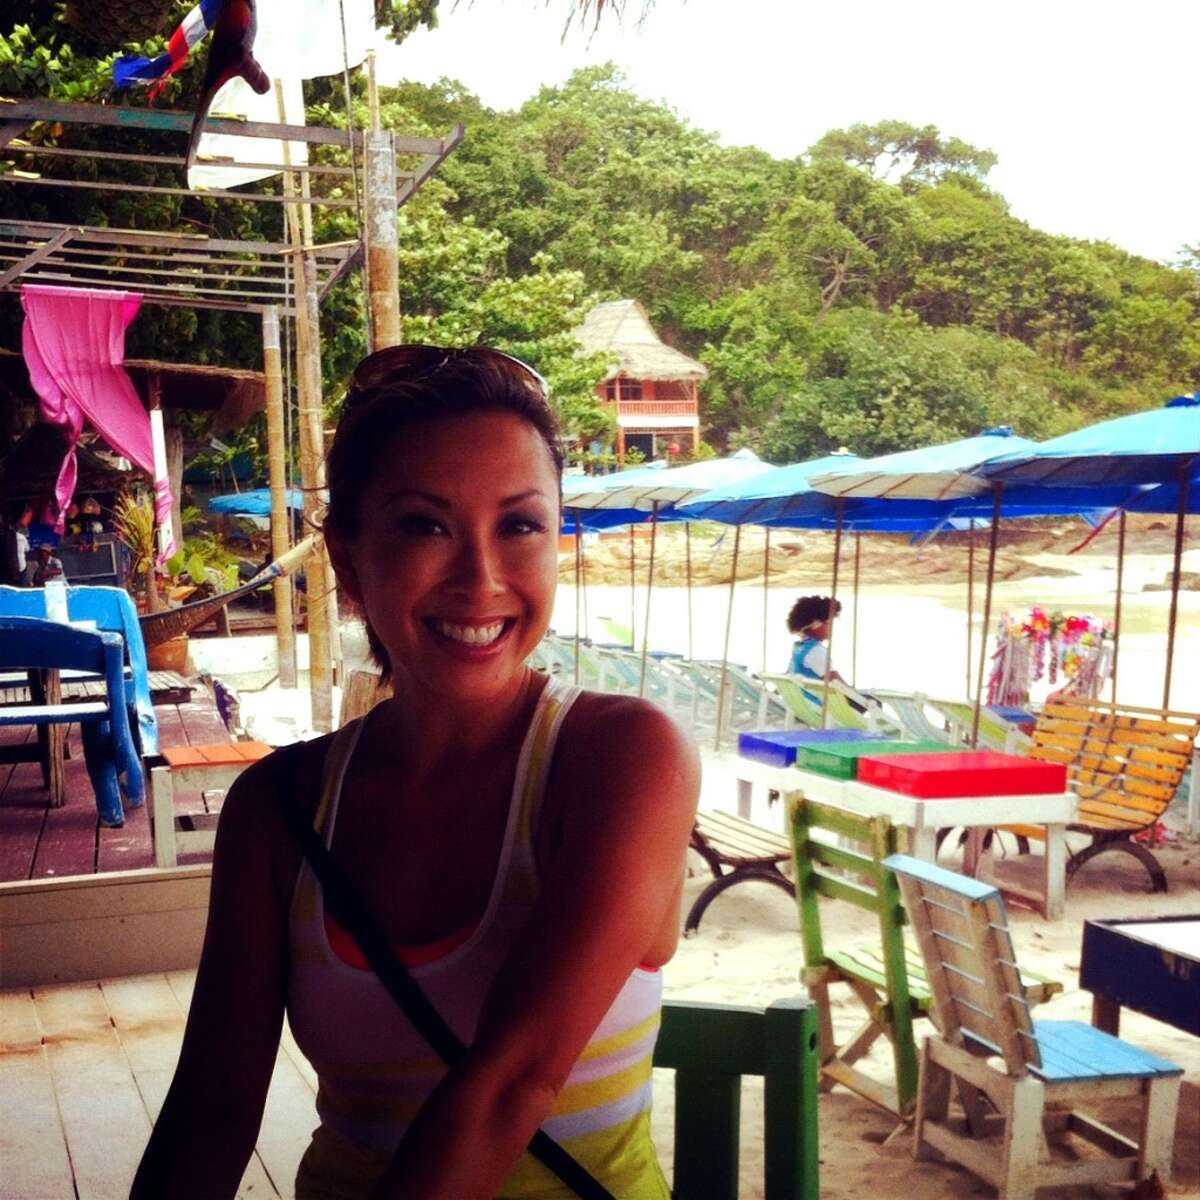 """KHOU anchor Lily Jang: """"Backpack through a new country. Talk to perfect strangers. Learn a new language. Discover a world of endless life lessons. I have never found the author but I live by his/her quote: Traveling is the only thing you can buy that makes you richer."""" (This photo was taken in Ko Samet, Thailand, June 2012)."""